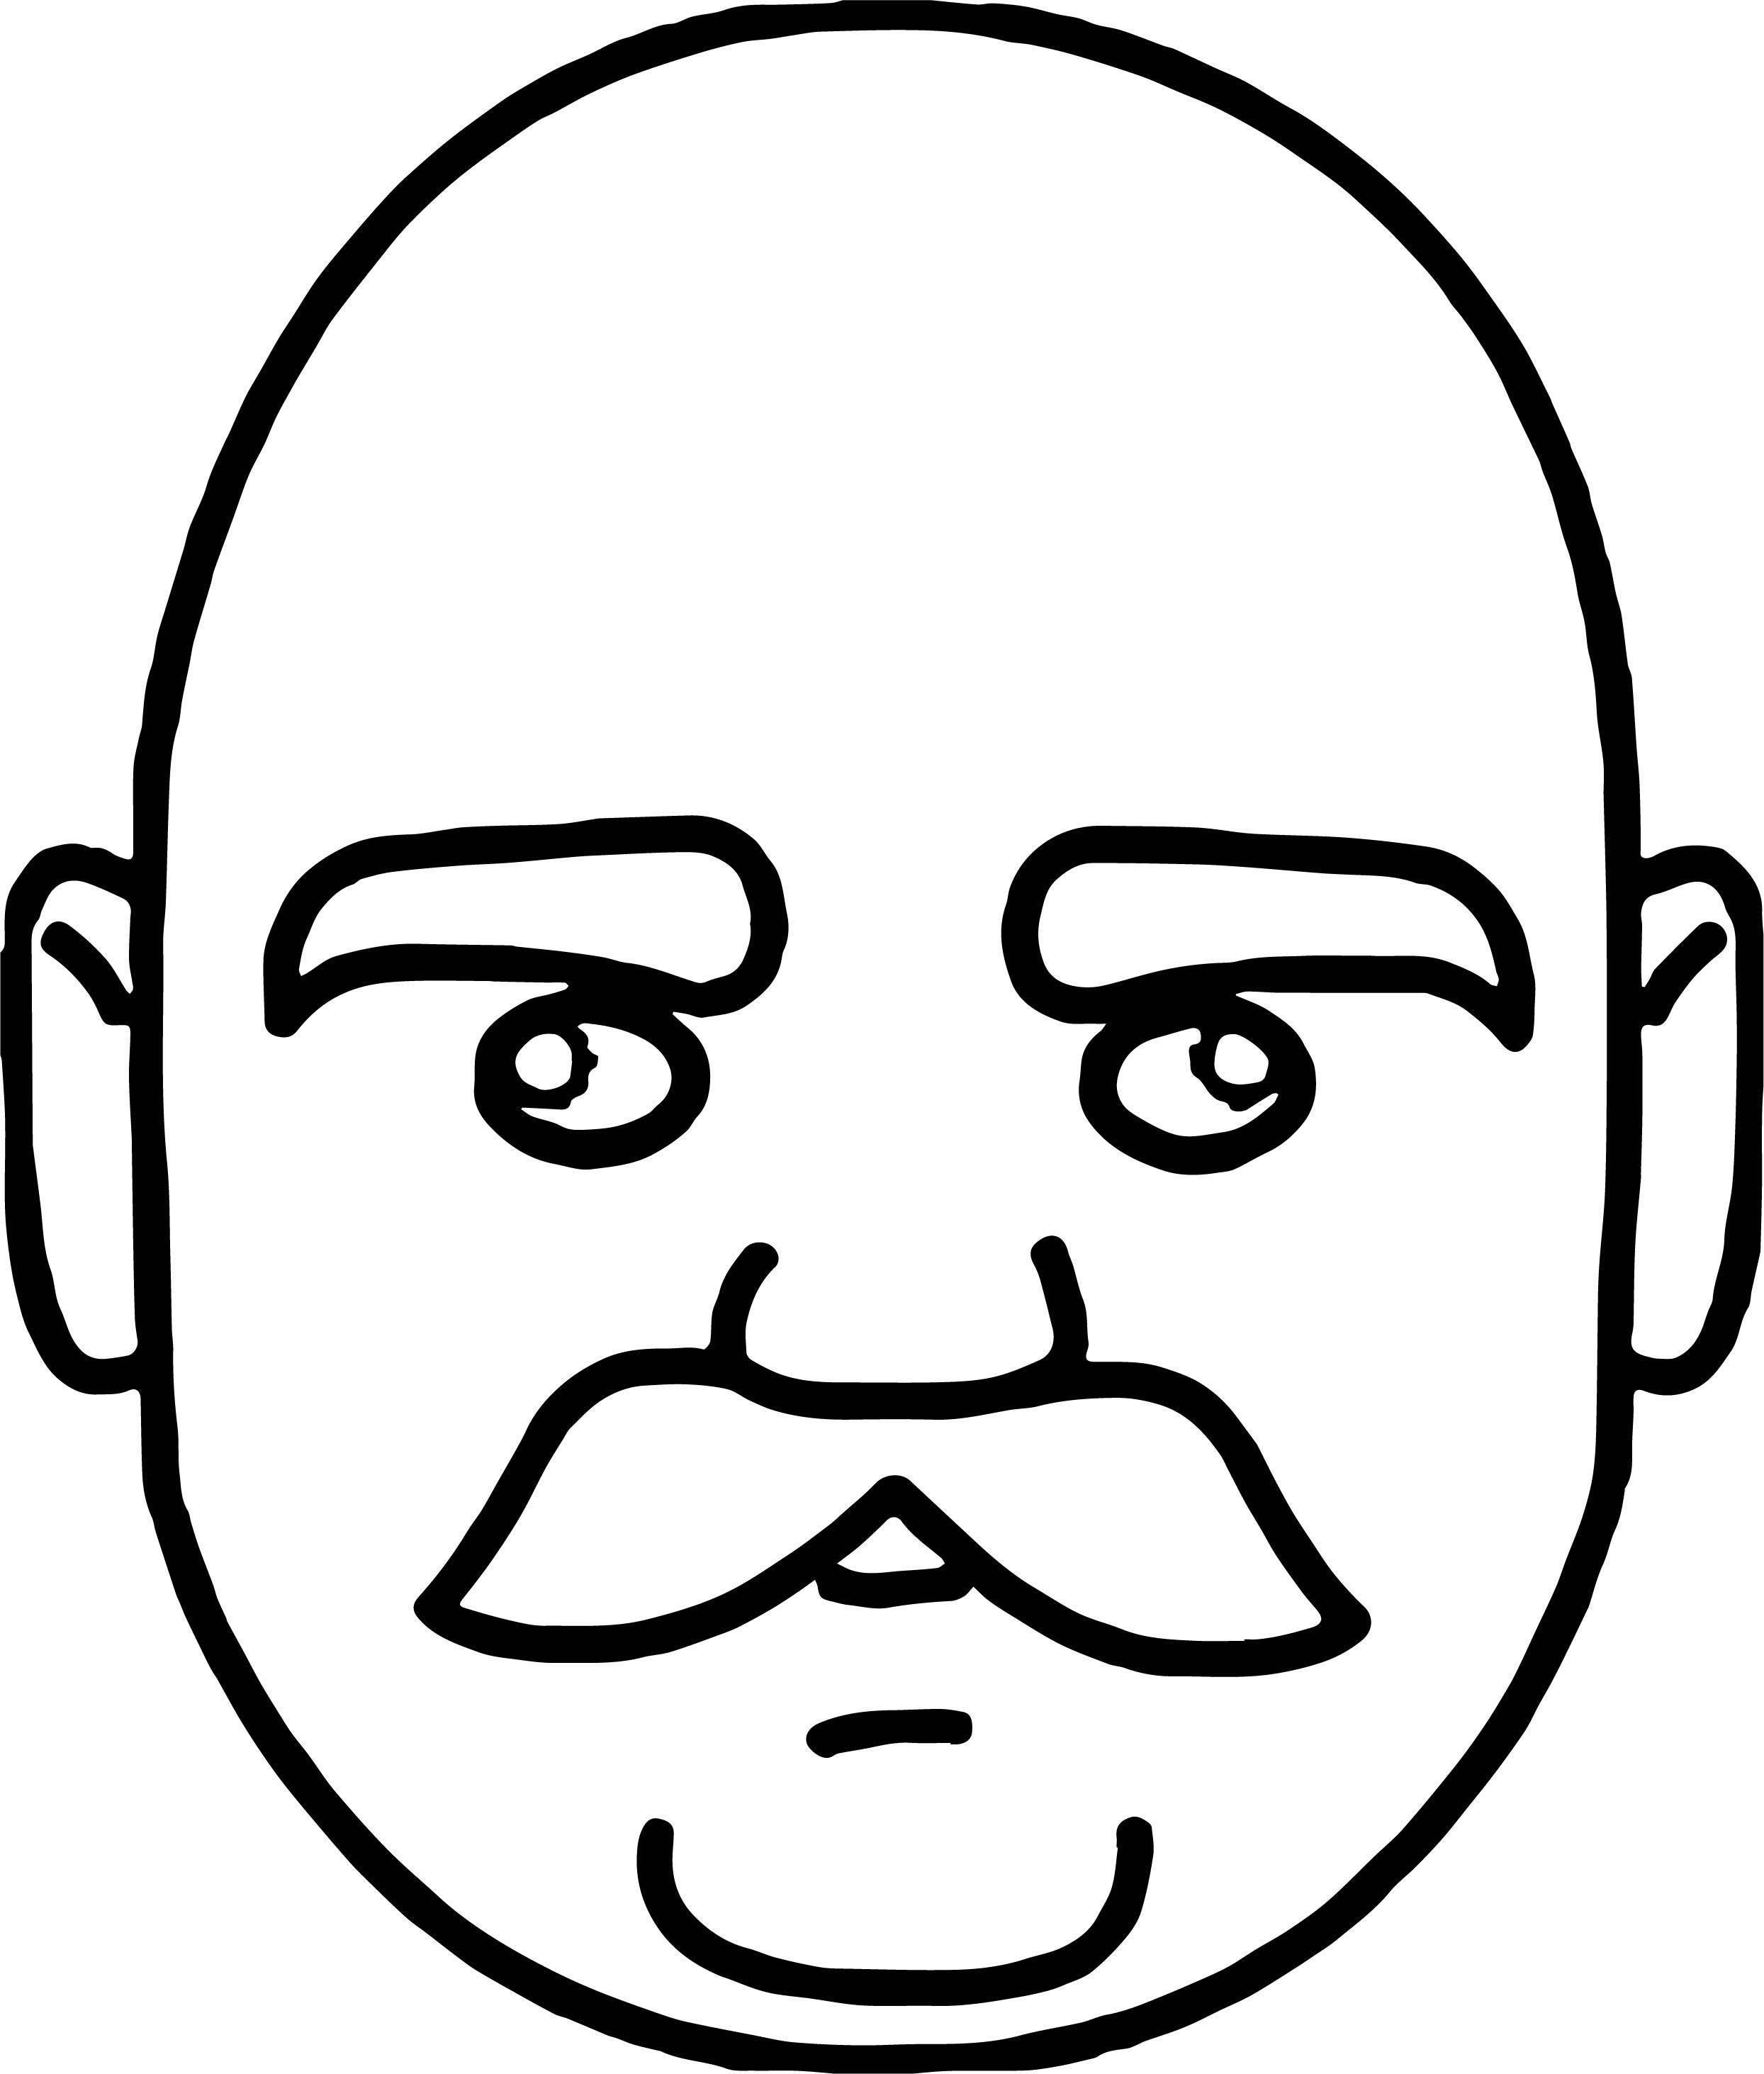 Tn Face Of Bald Headed Man With Mustache Coloring Page